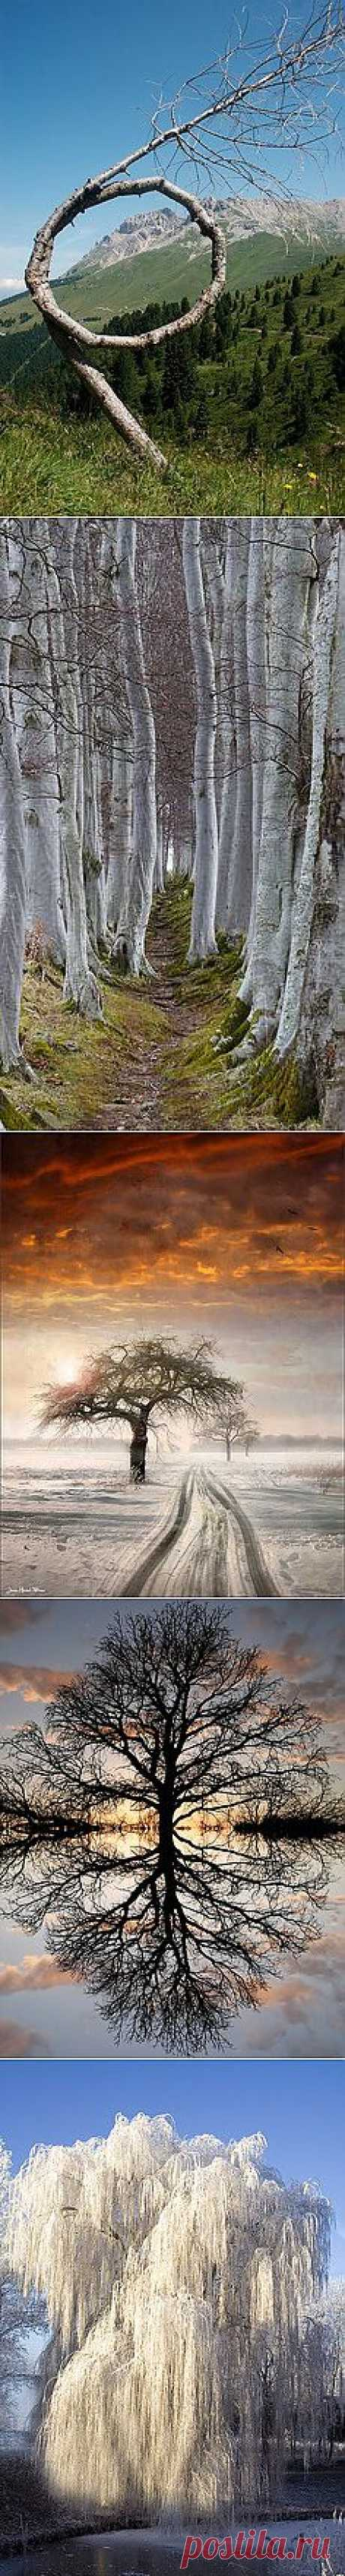 Magestic Trees